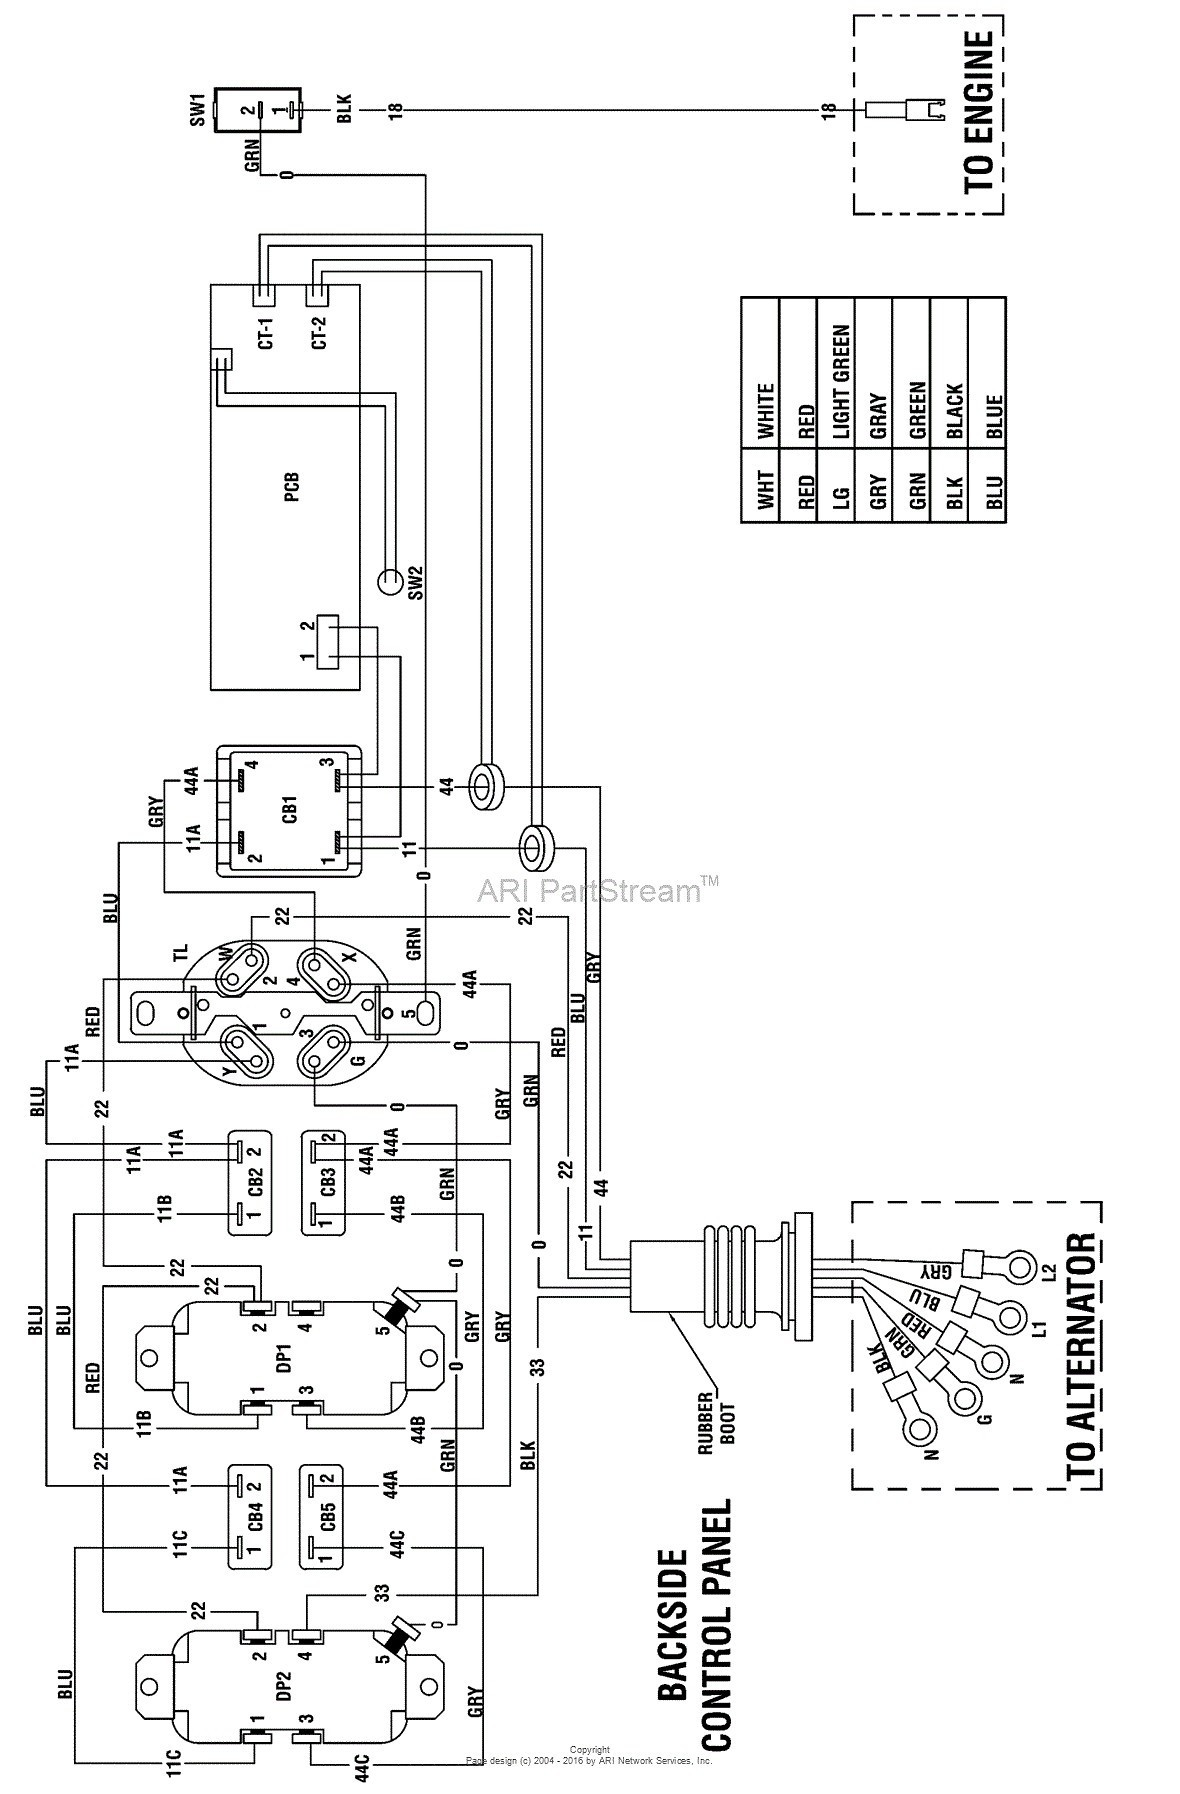 hight resolution of wiring diagram briggs stratton engine archives gidn co best incredible